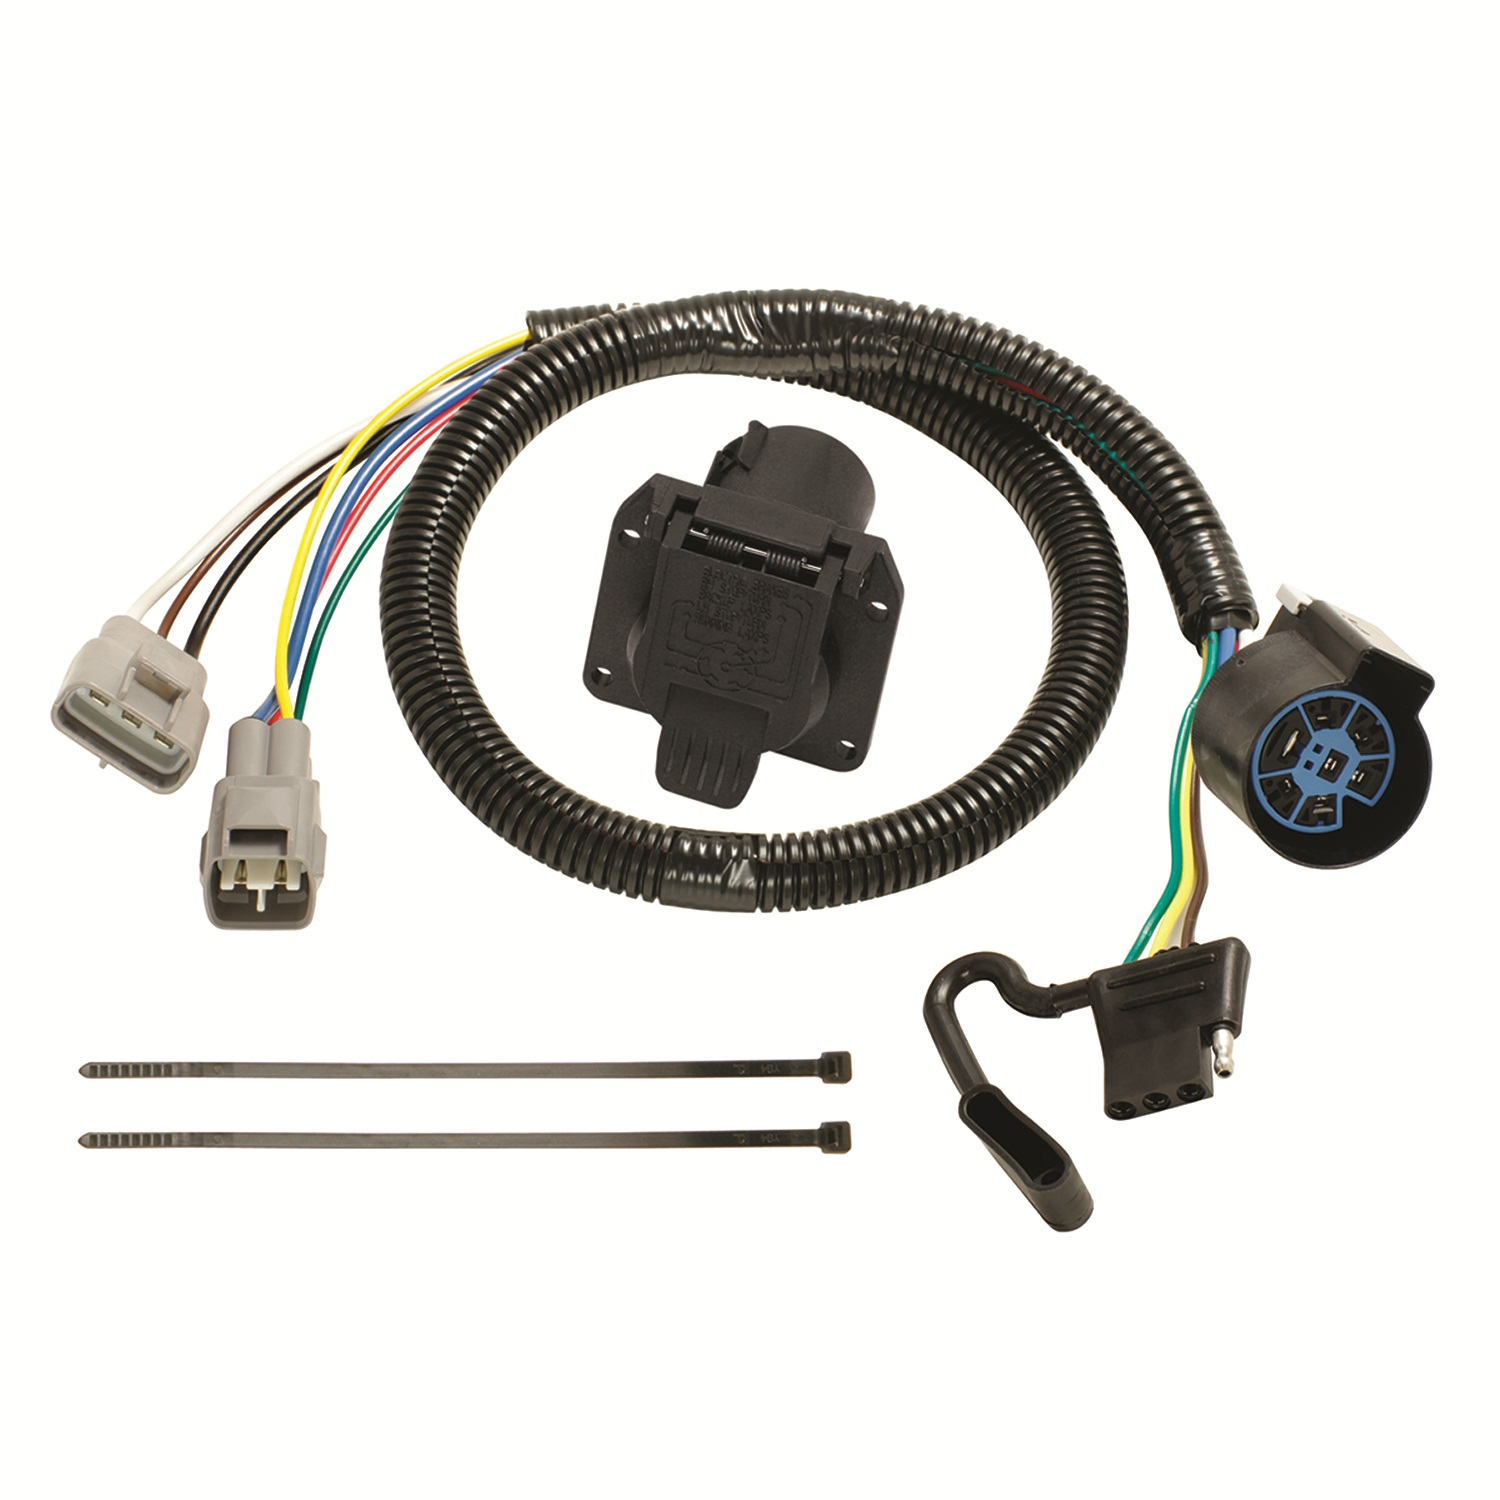 10-C 4Runner Replacement Oem 7Way/4Flat Combo Wiring Harness Replacement Auto Part, Easy to Install